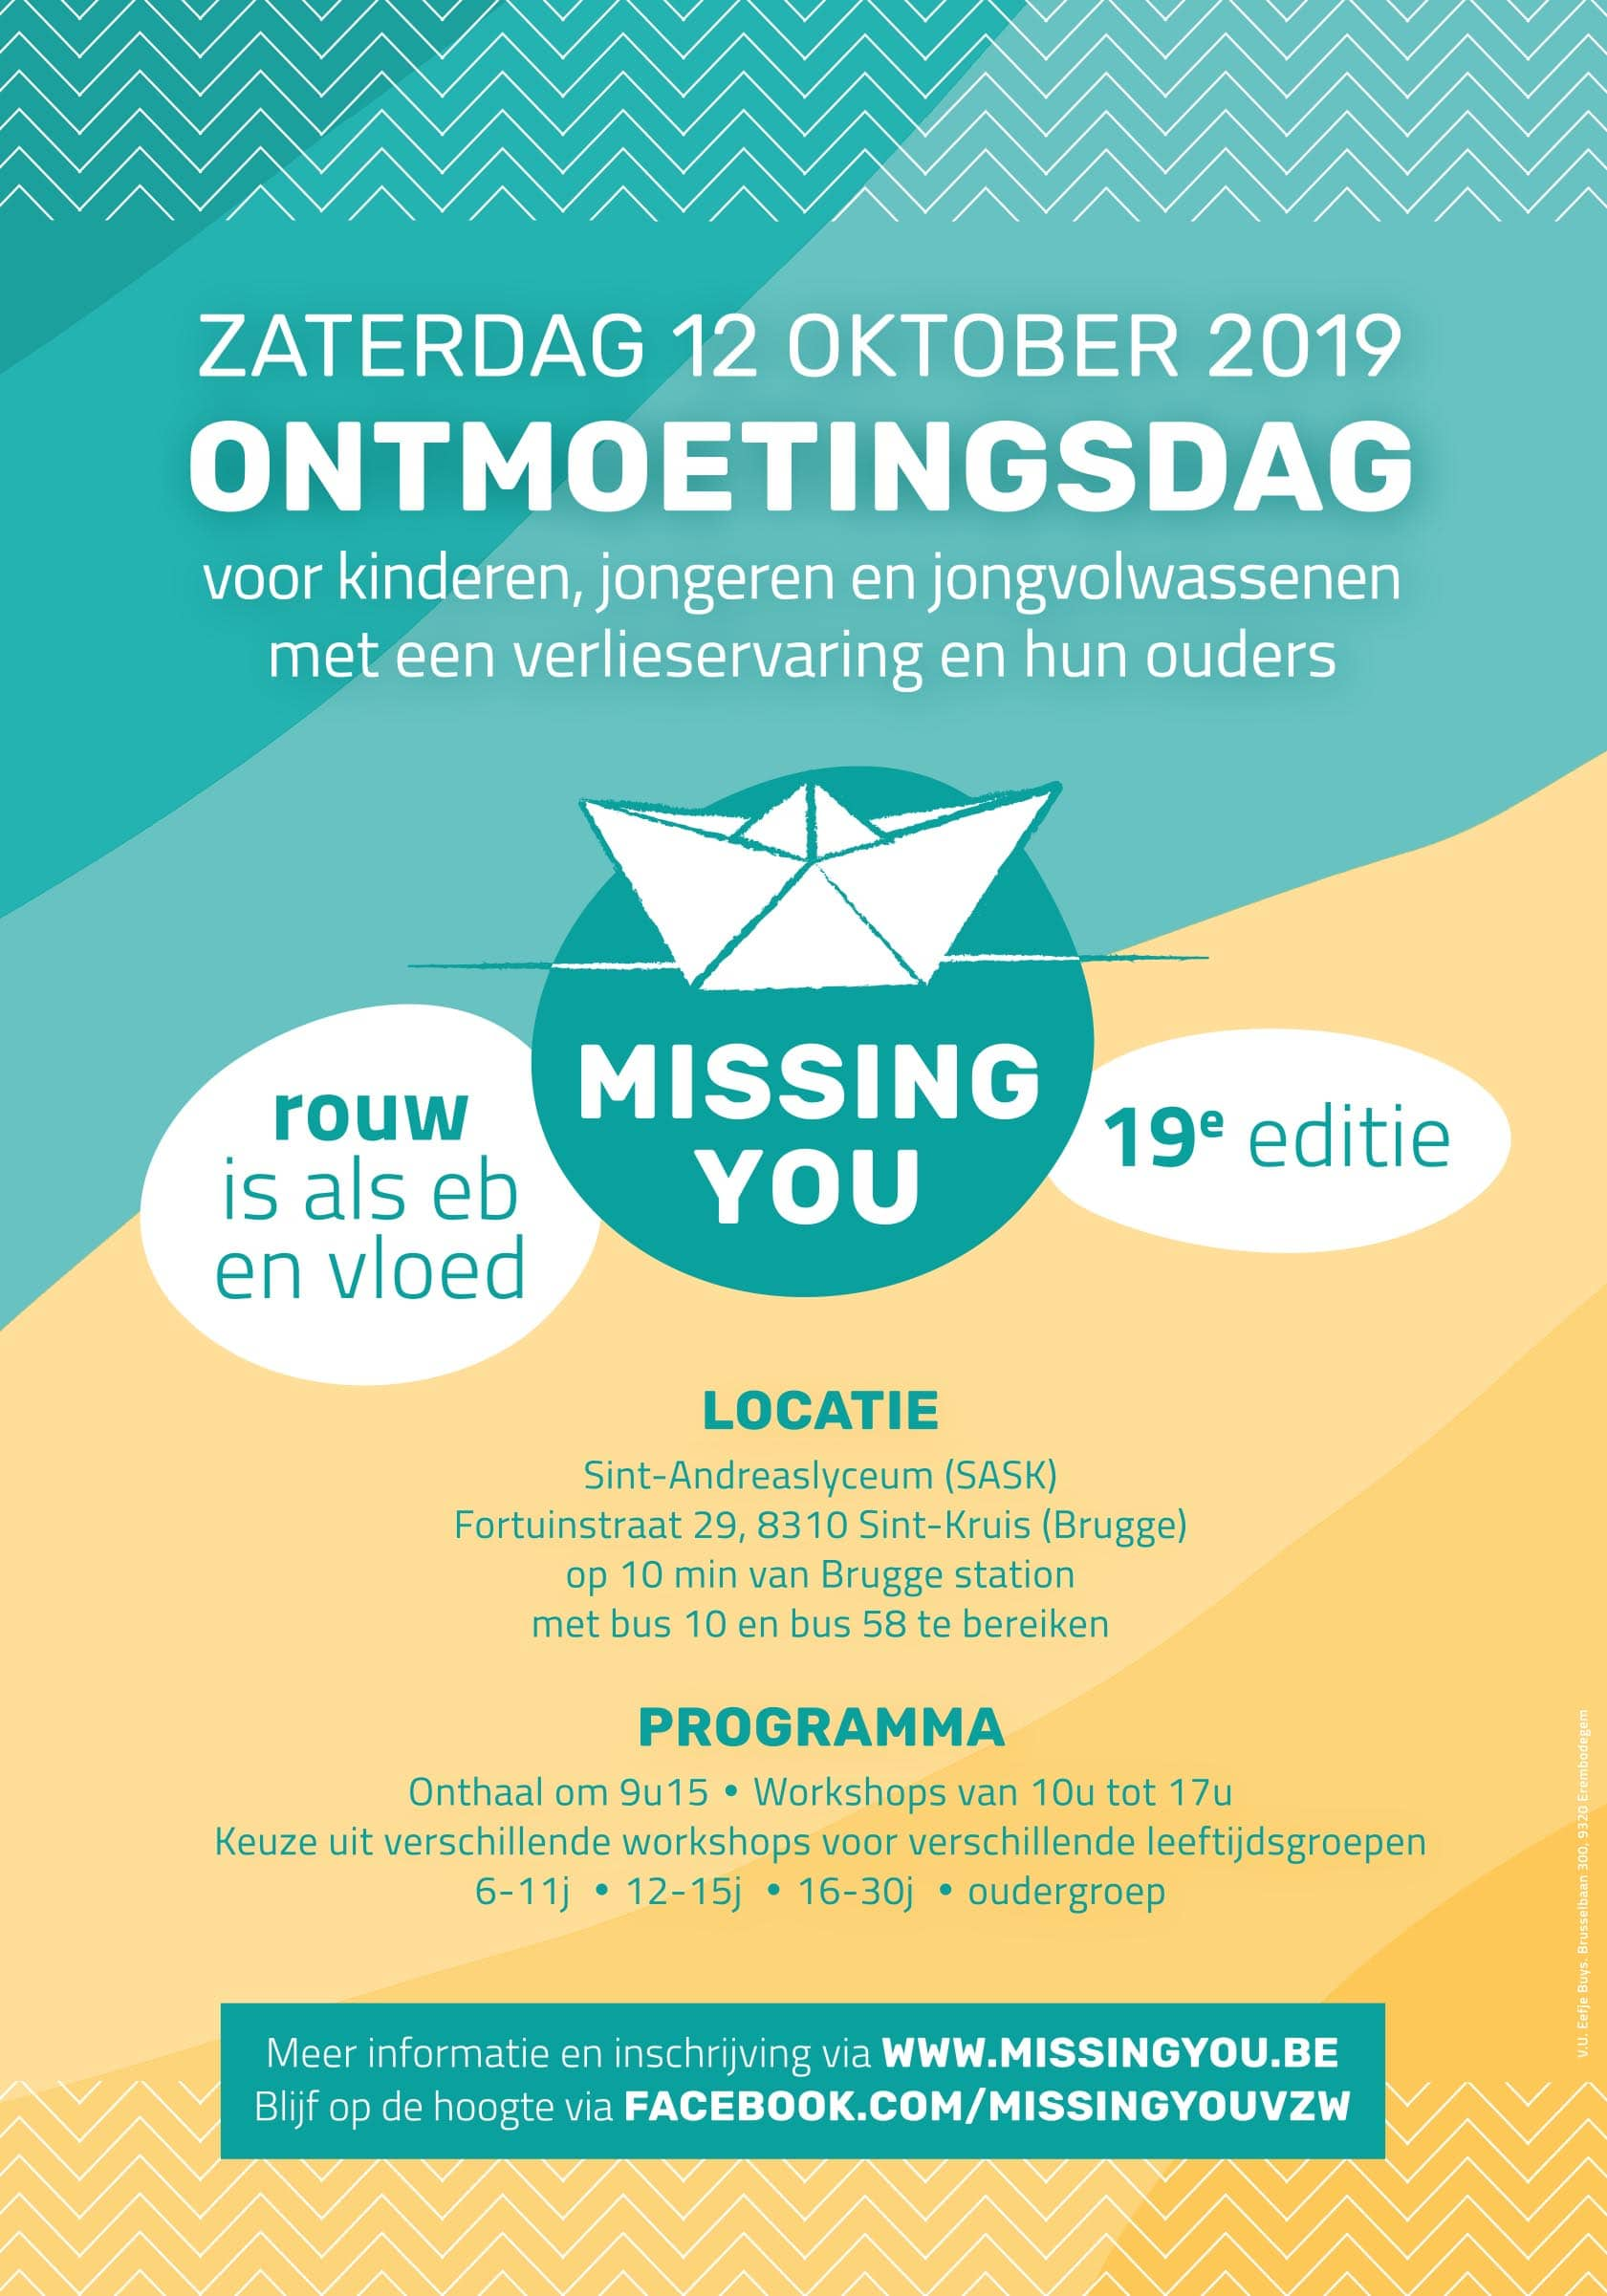 Missing You Ontmoetingsdag 2019